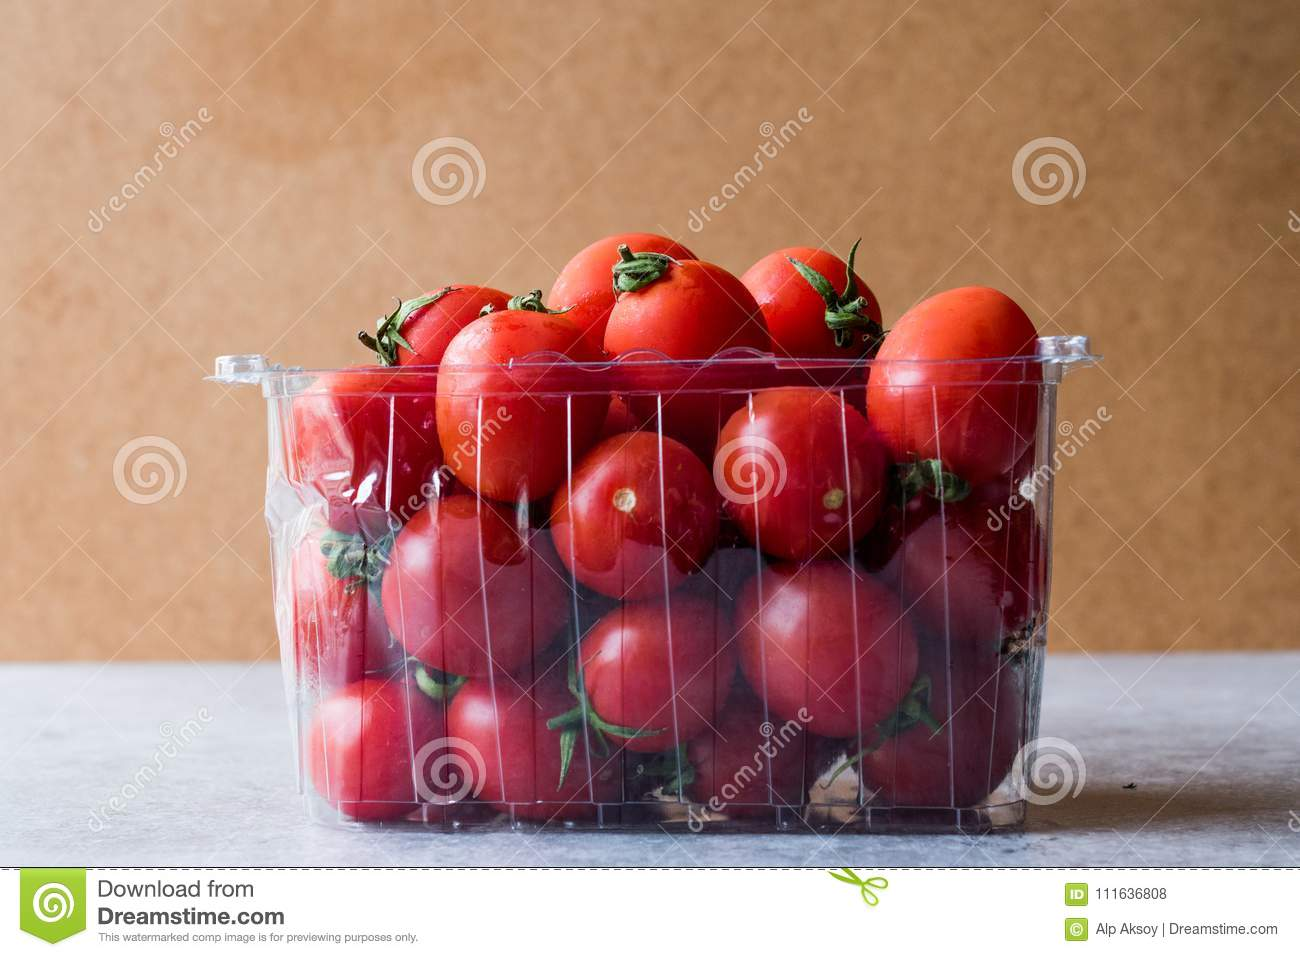 Packe av Cherry Tomatoes i plast- ask/behållare